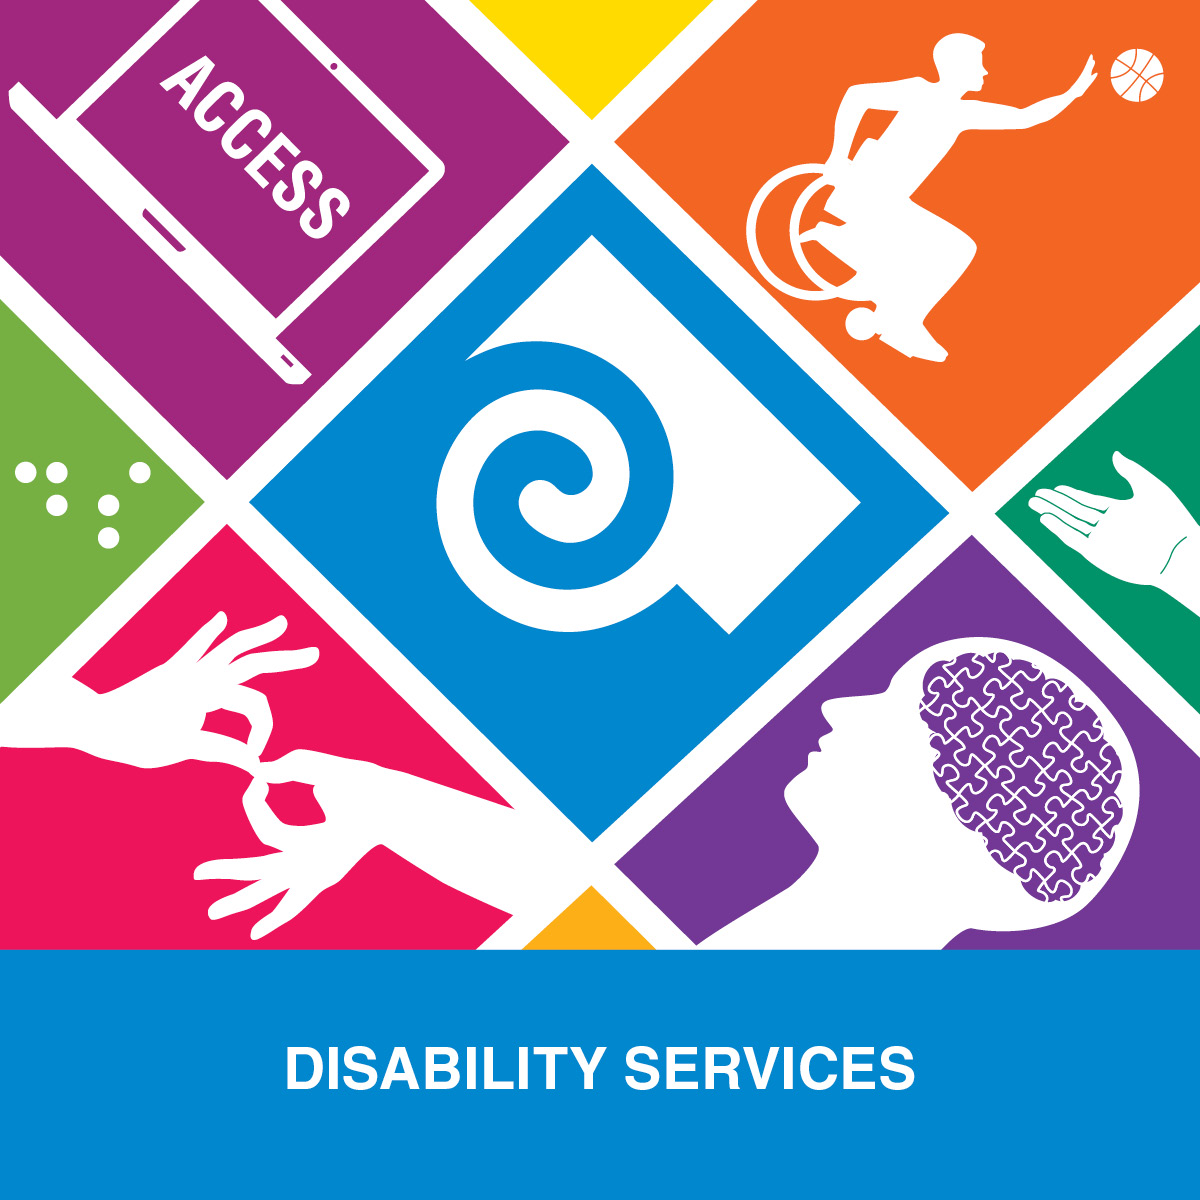 50th anniversary logo for Disability Services with colorful imagery